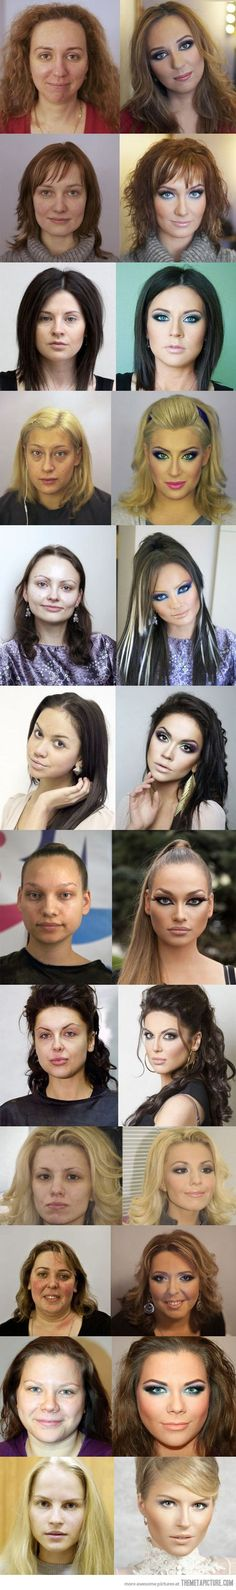 "Oh WOW.... It""s amazing what make-up can do!"